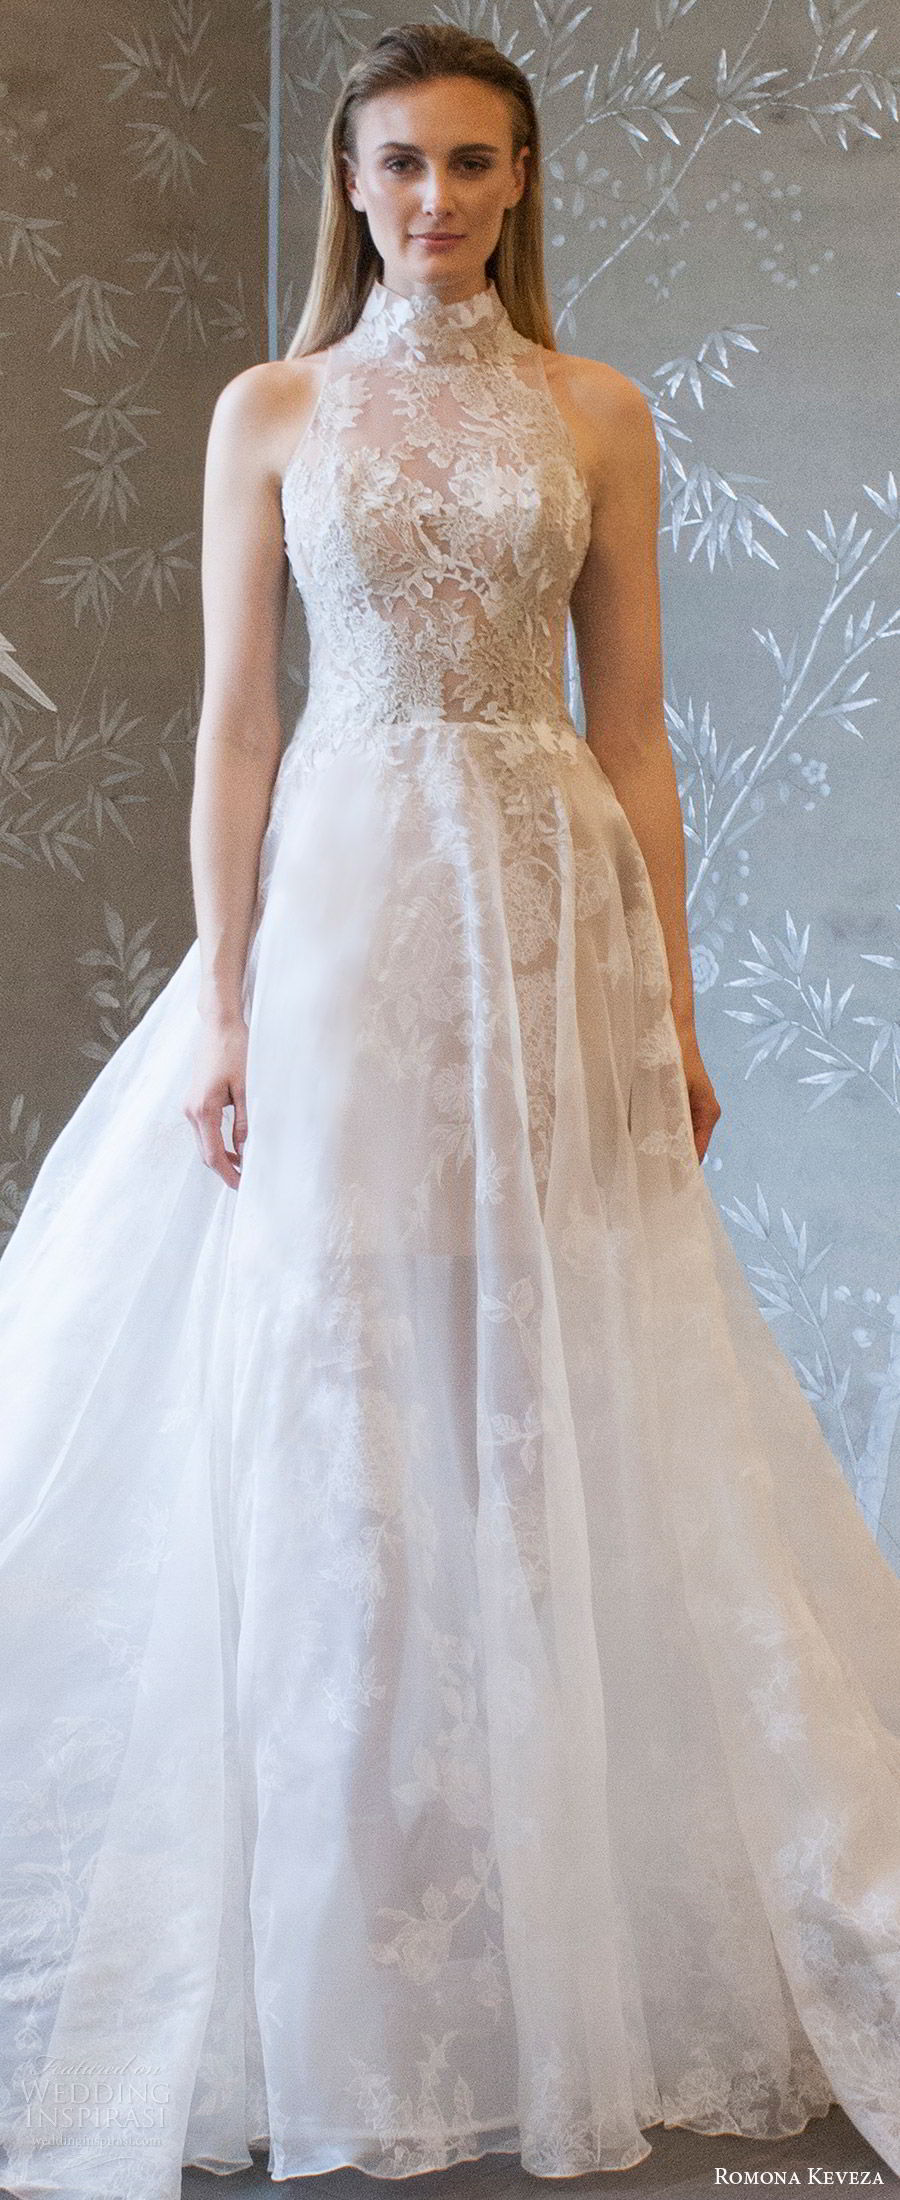 romona keveza spring 2018 bridal sleeveless high neck illusion bodice lace a line wedding dress (rk8407) zv elegant romantic cathedral train